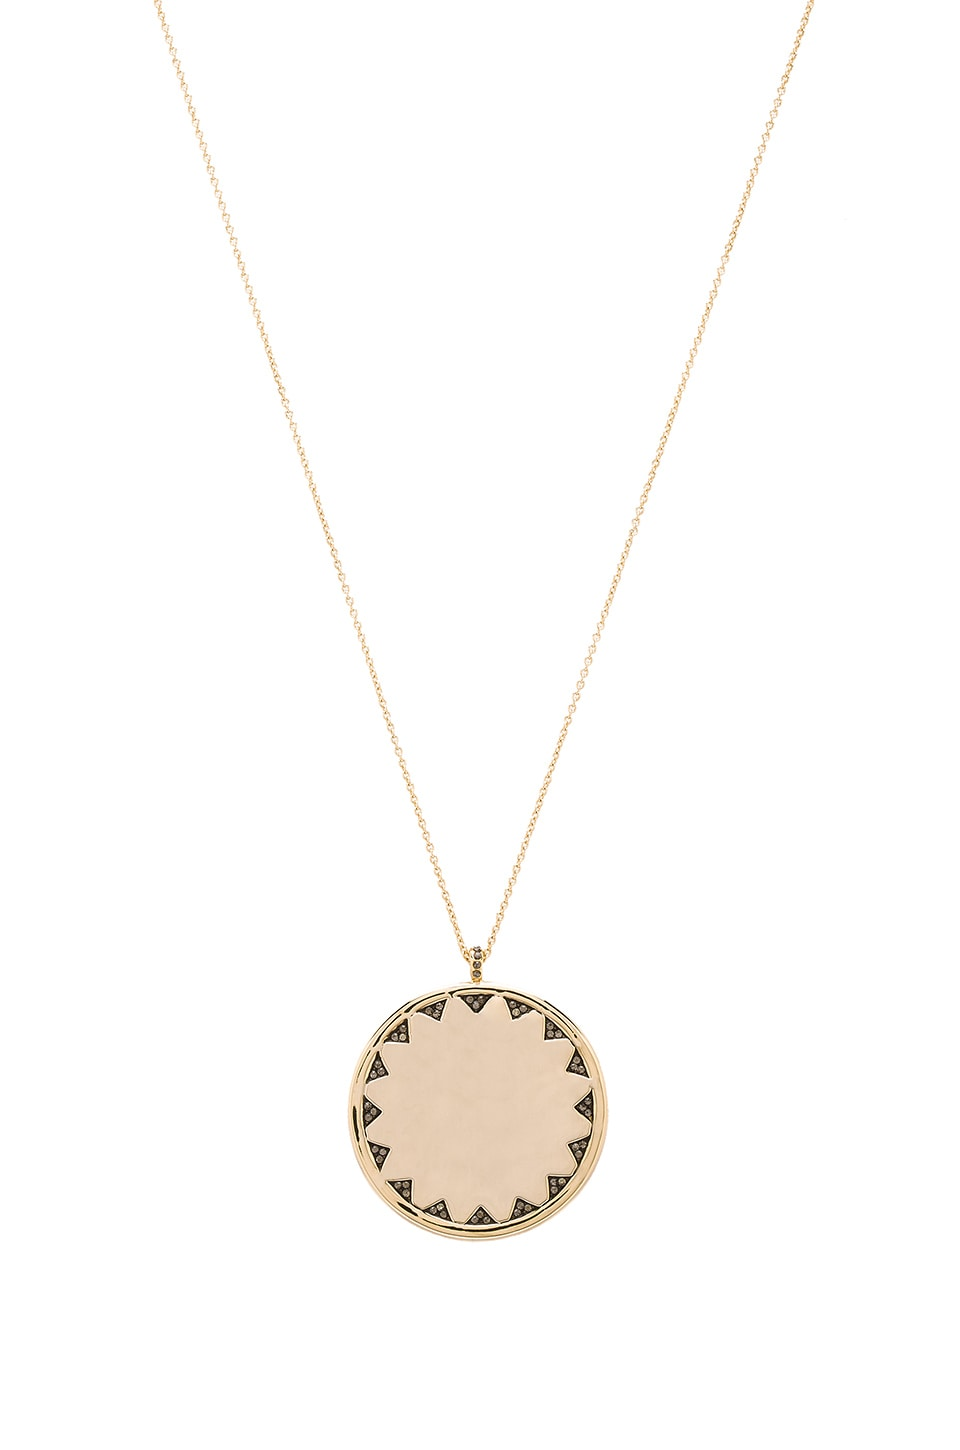 House of harlow 1960 house of harlow incan sun coin pendant necklace house of harlow incan sun coin pendant necklace mozeypictures Image collections